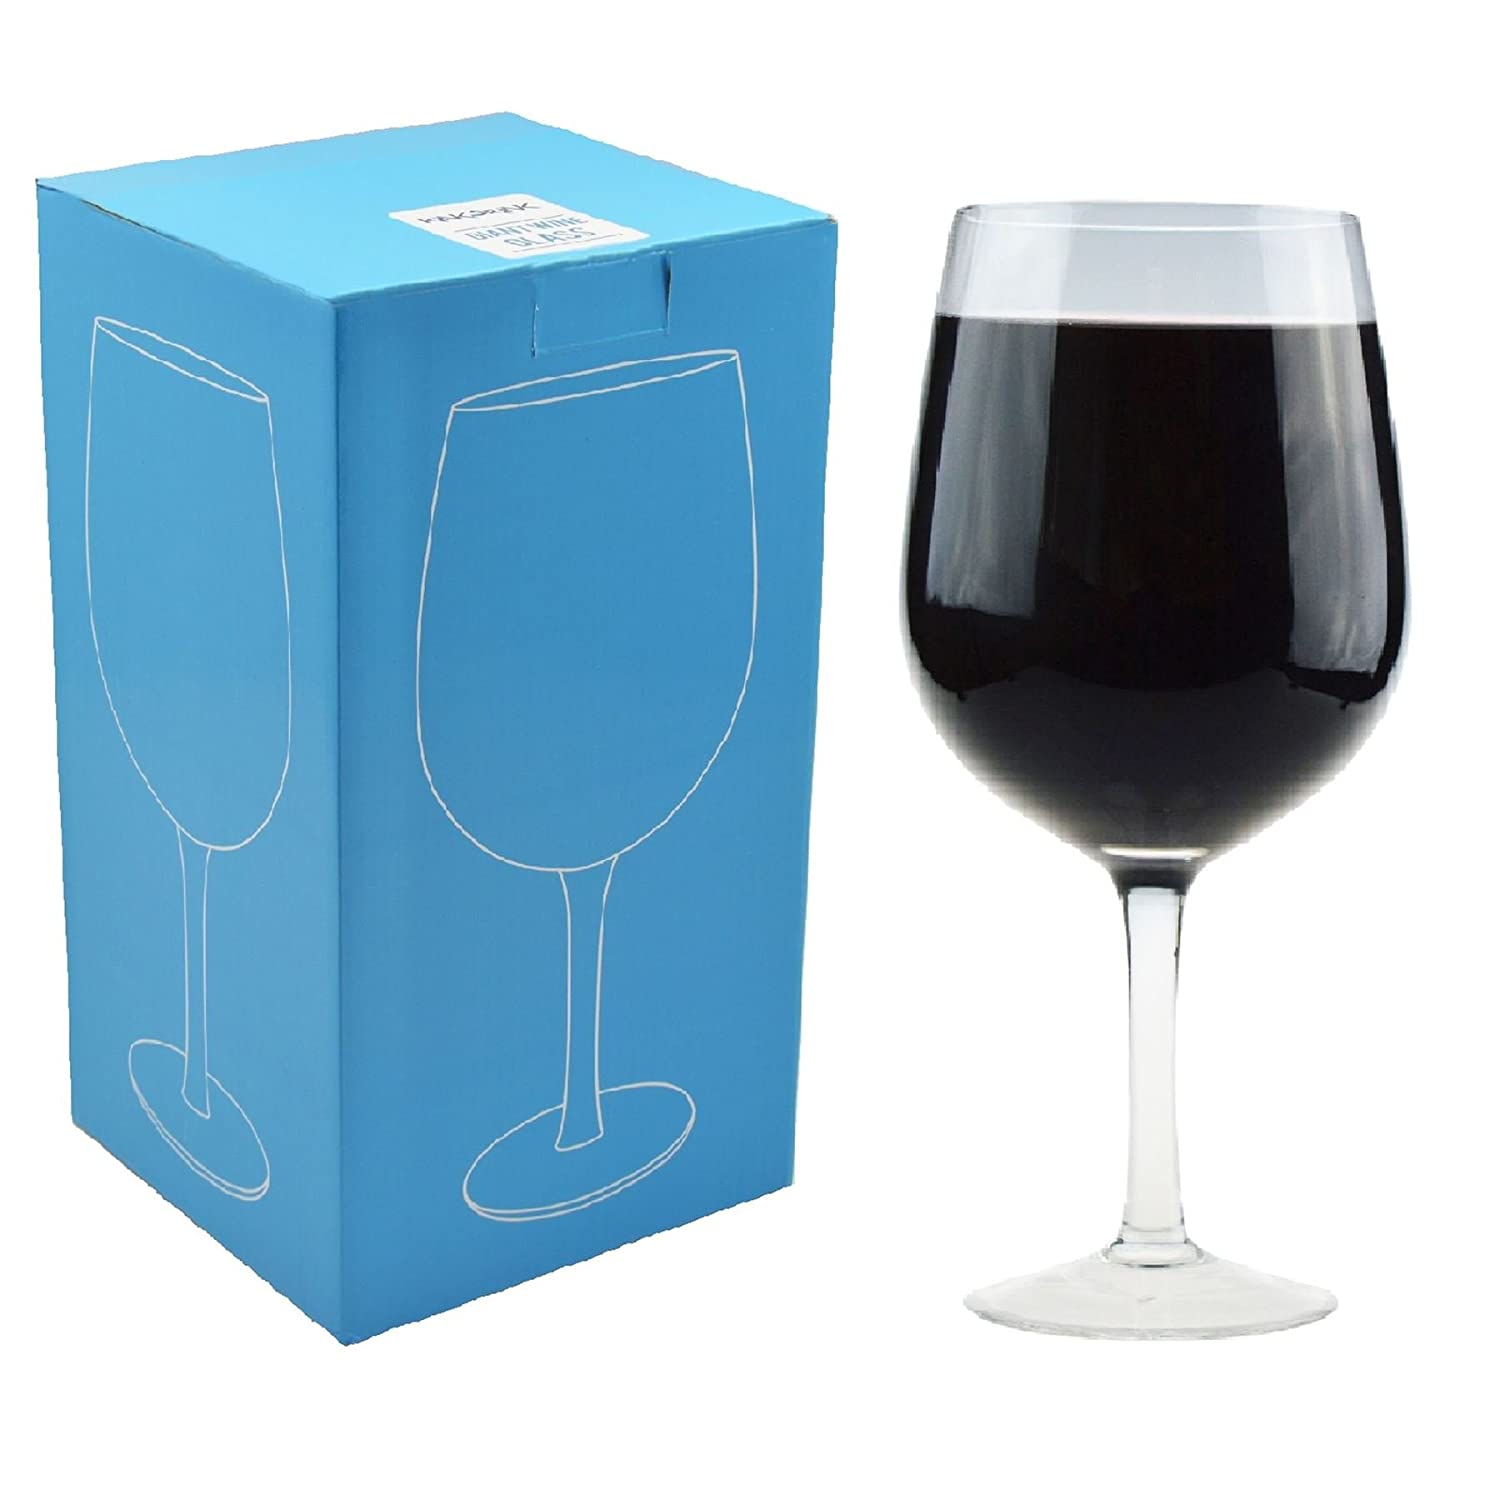 Rink Drink Giant Wine Glass, Party Glass. Holds a whole bottle of wine, 750ml.